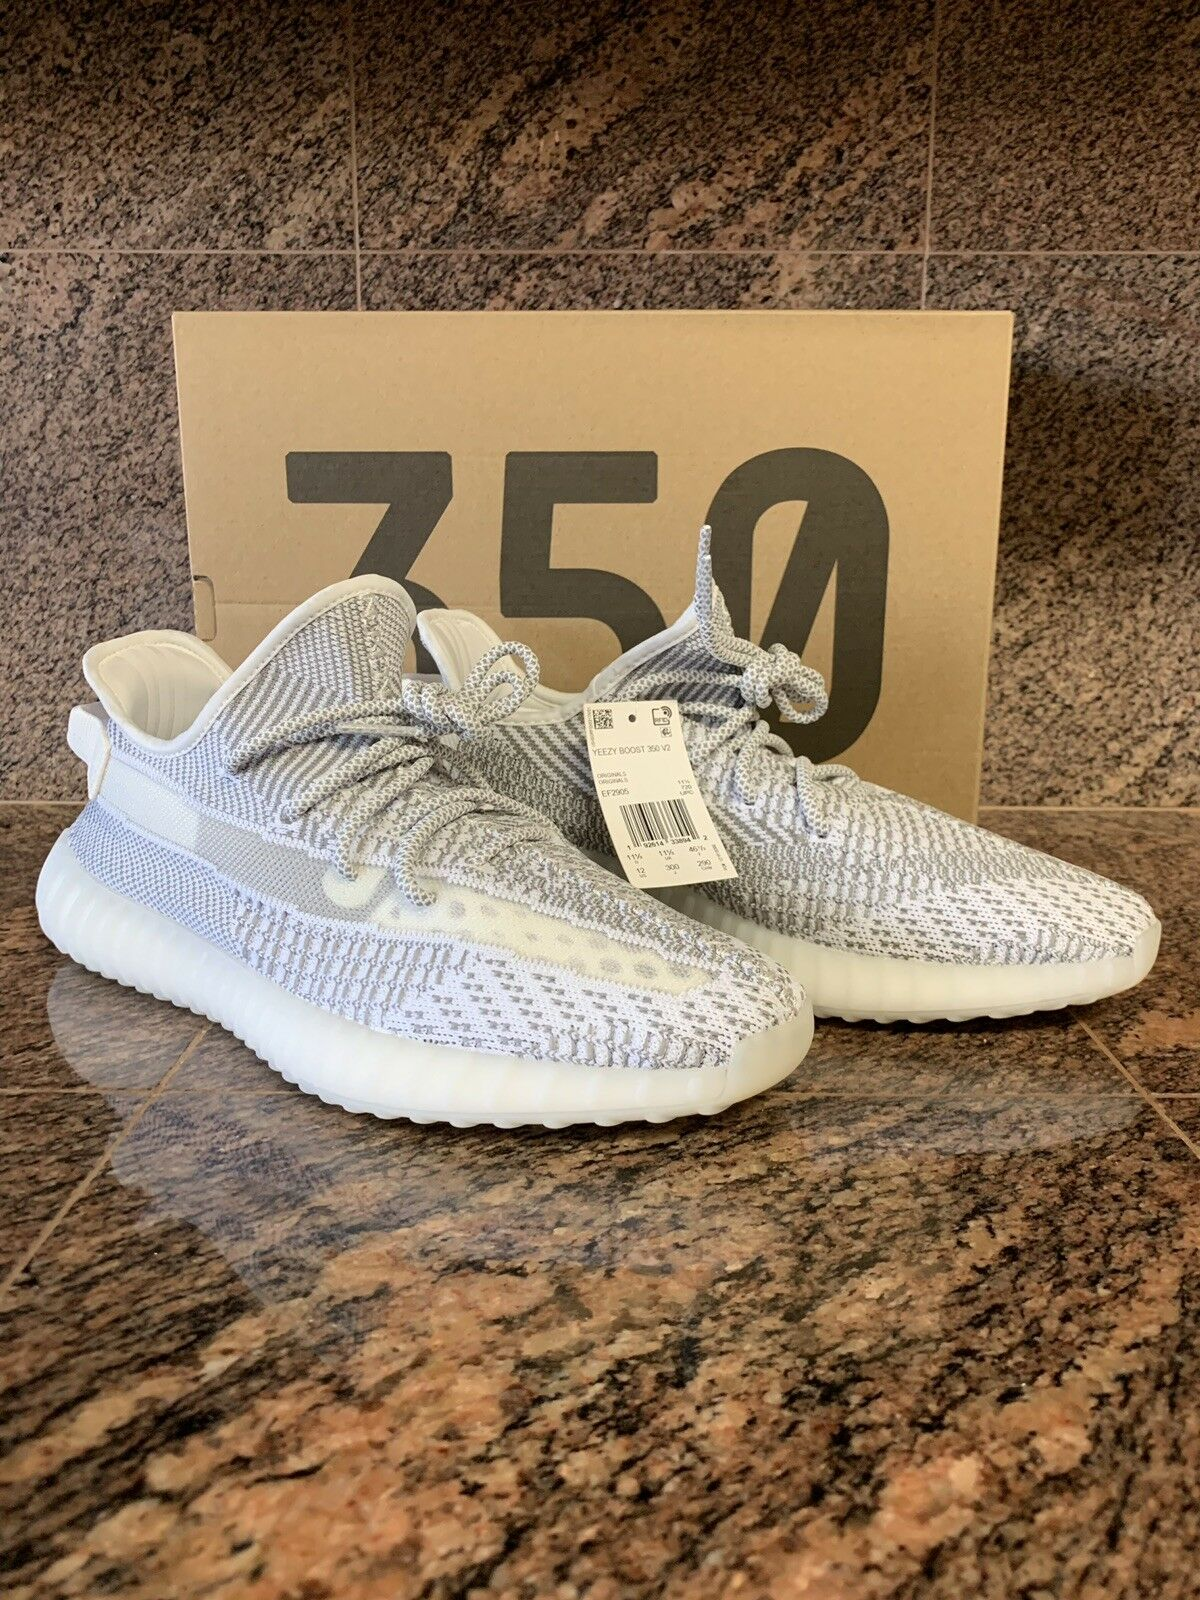 5b9a501fb1f39 YEZZY 350 V2 12US 11.5UK Static NONREFLECTIVE Included Foot Locker ...